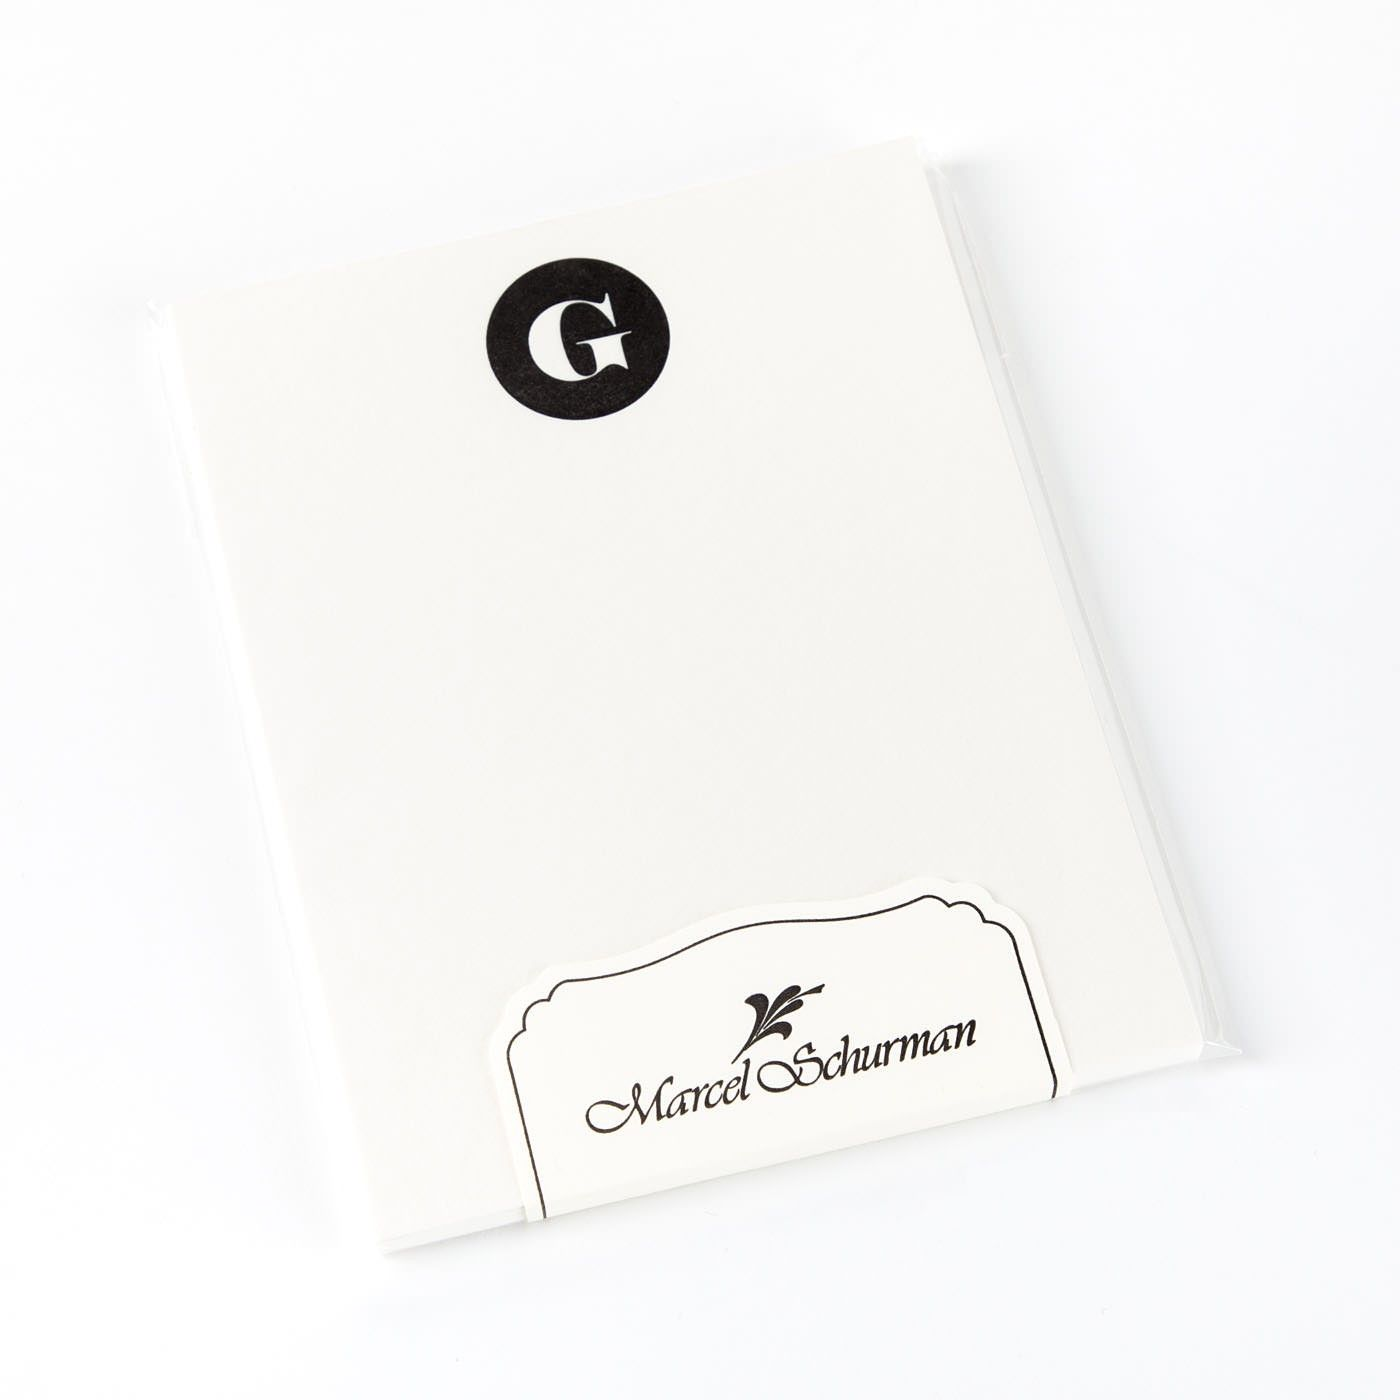 The Letter G Initial Is Letterpress Printed In A Circle